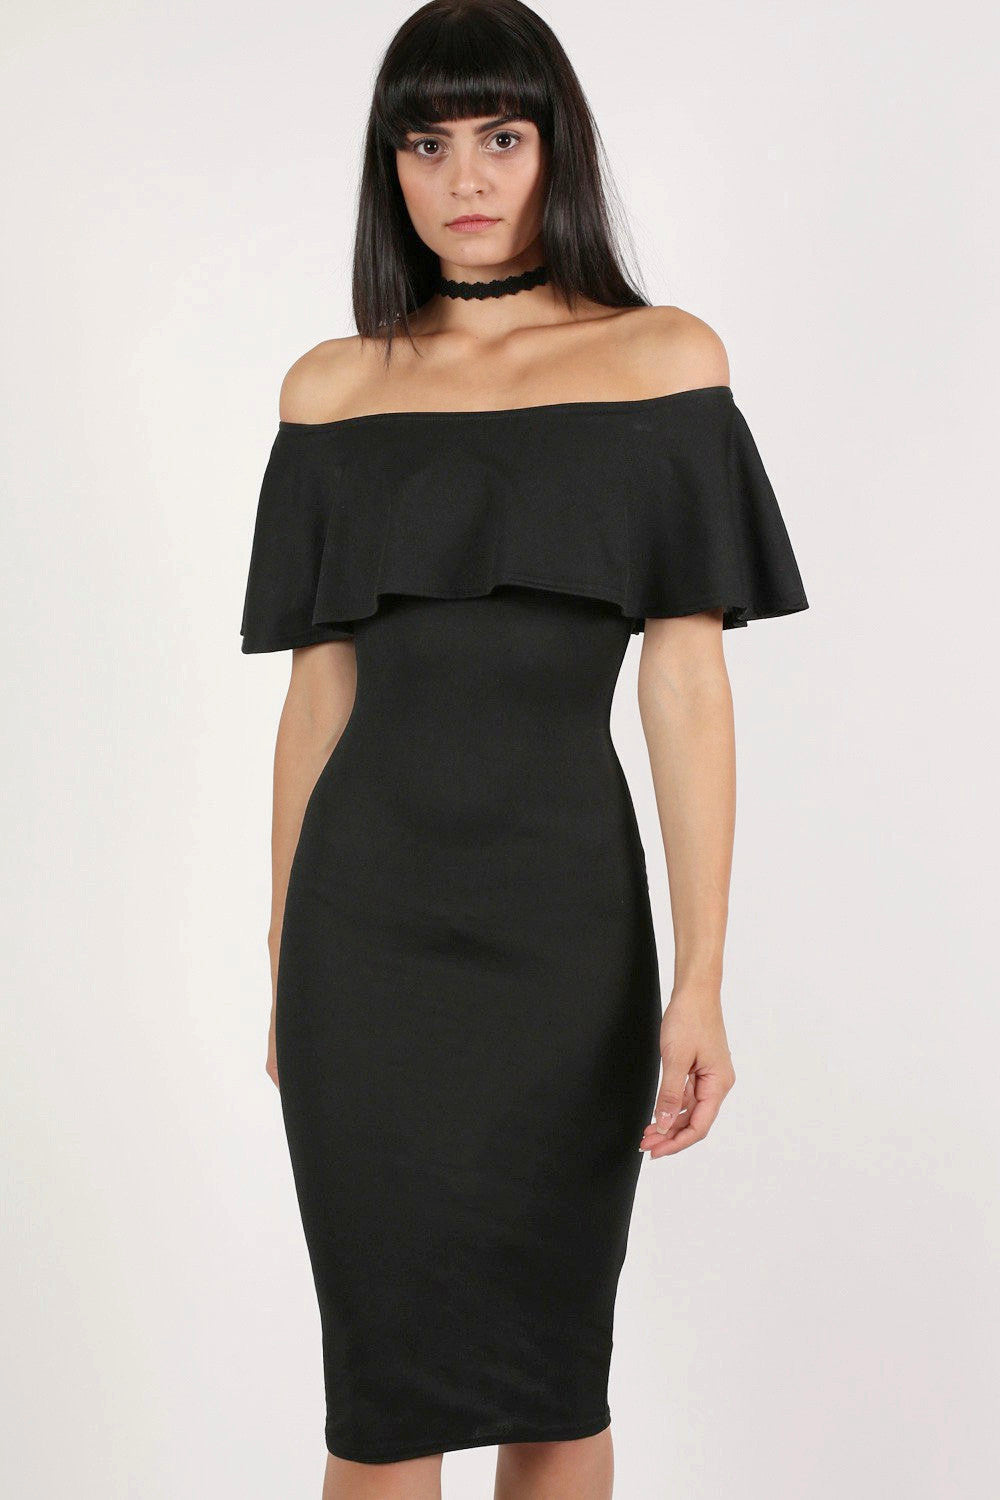 Off Shoulder Deep Frill Bodycon Midi Dress in Black MODEL FRONT